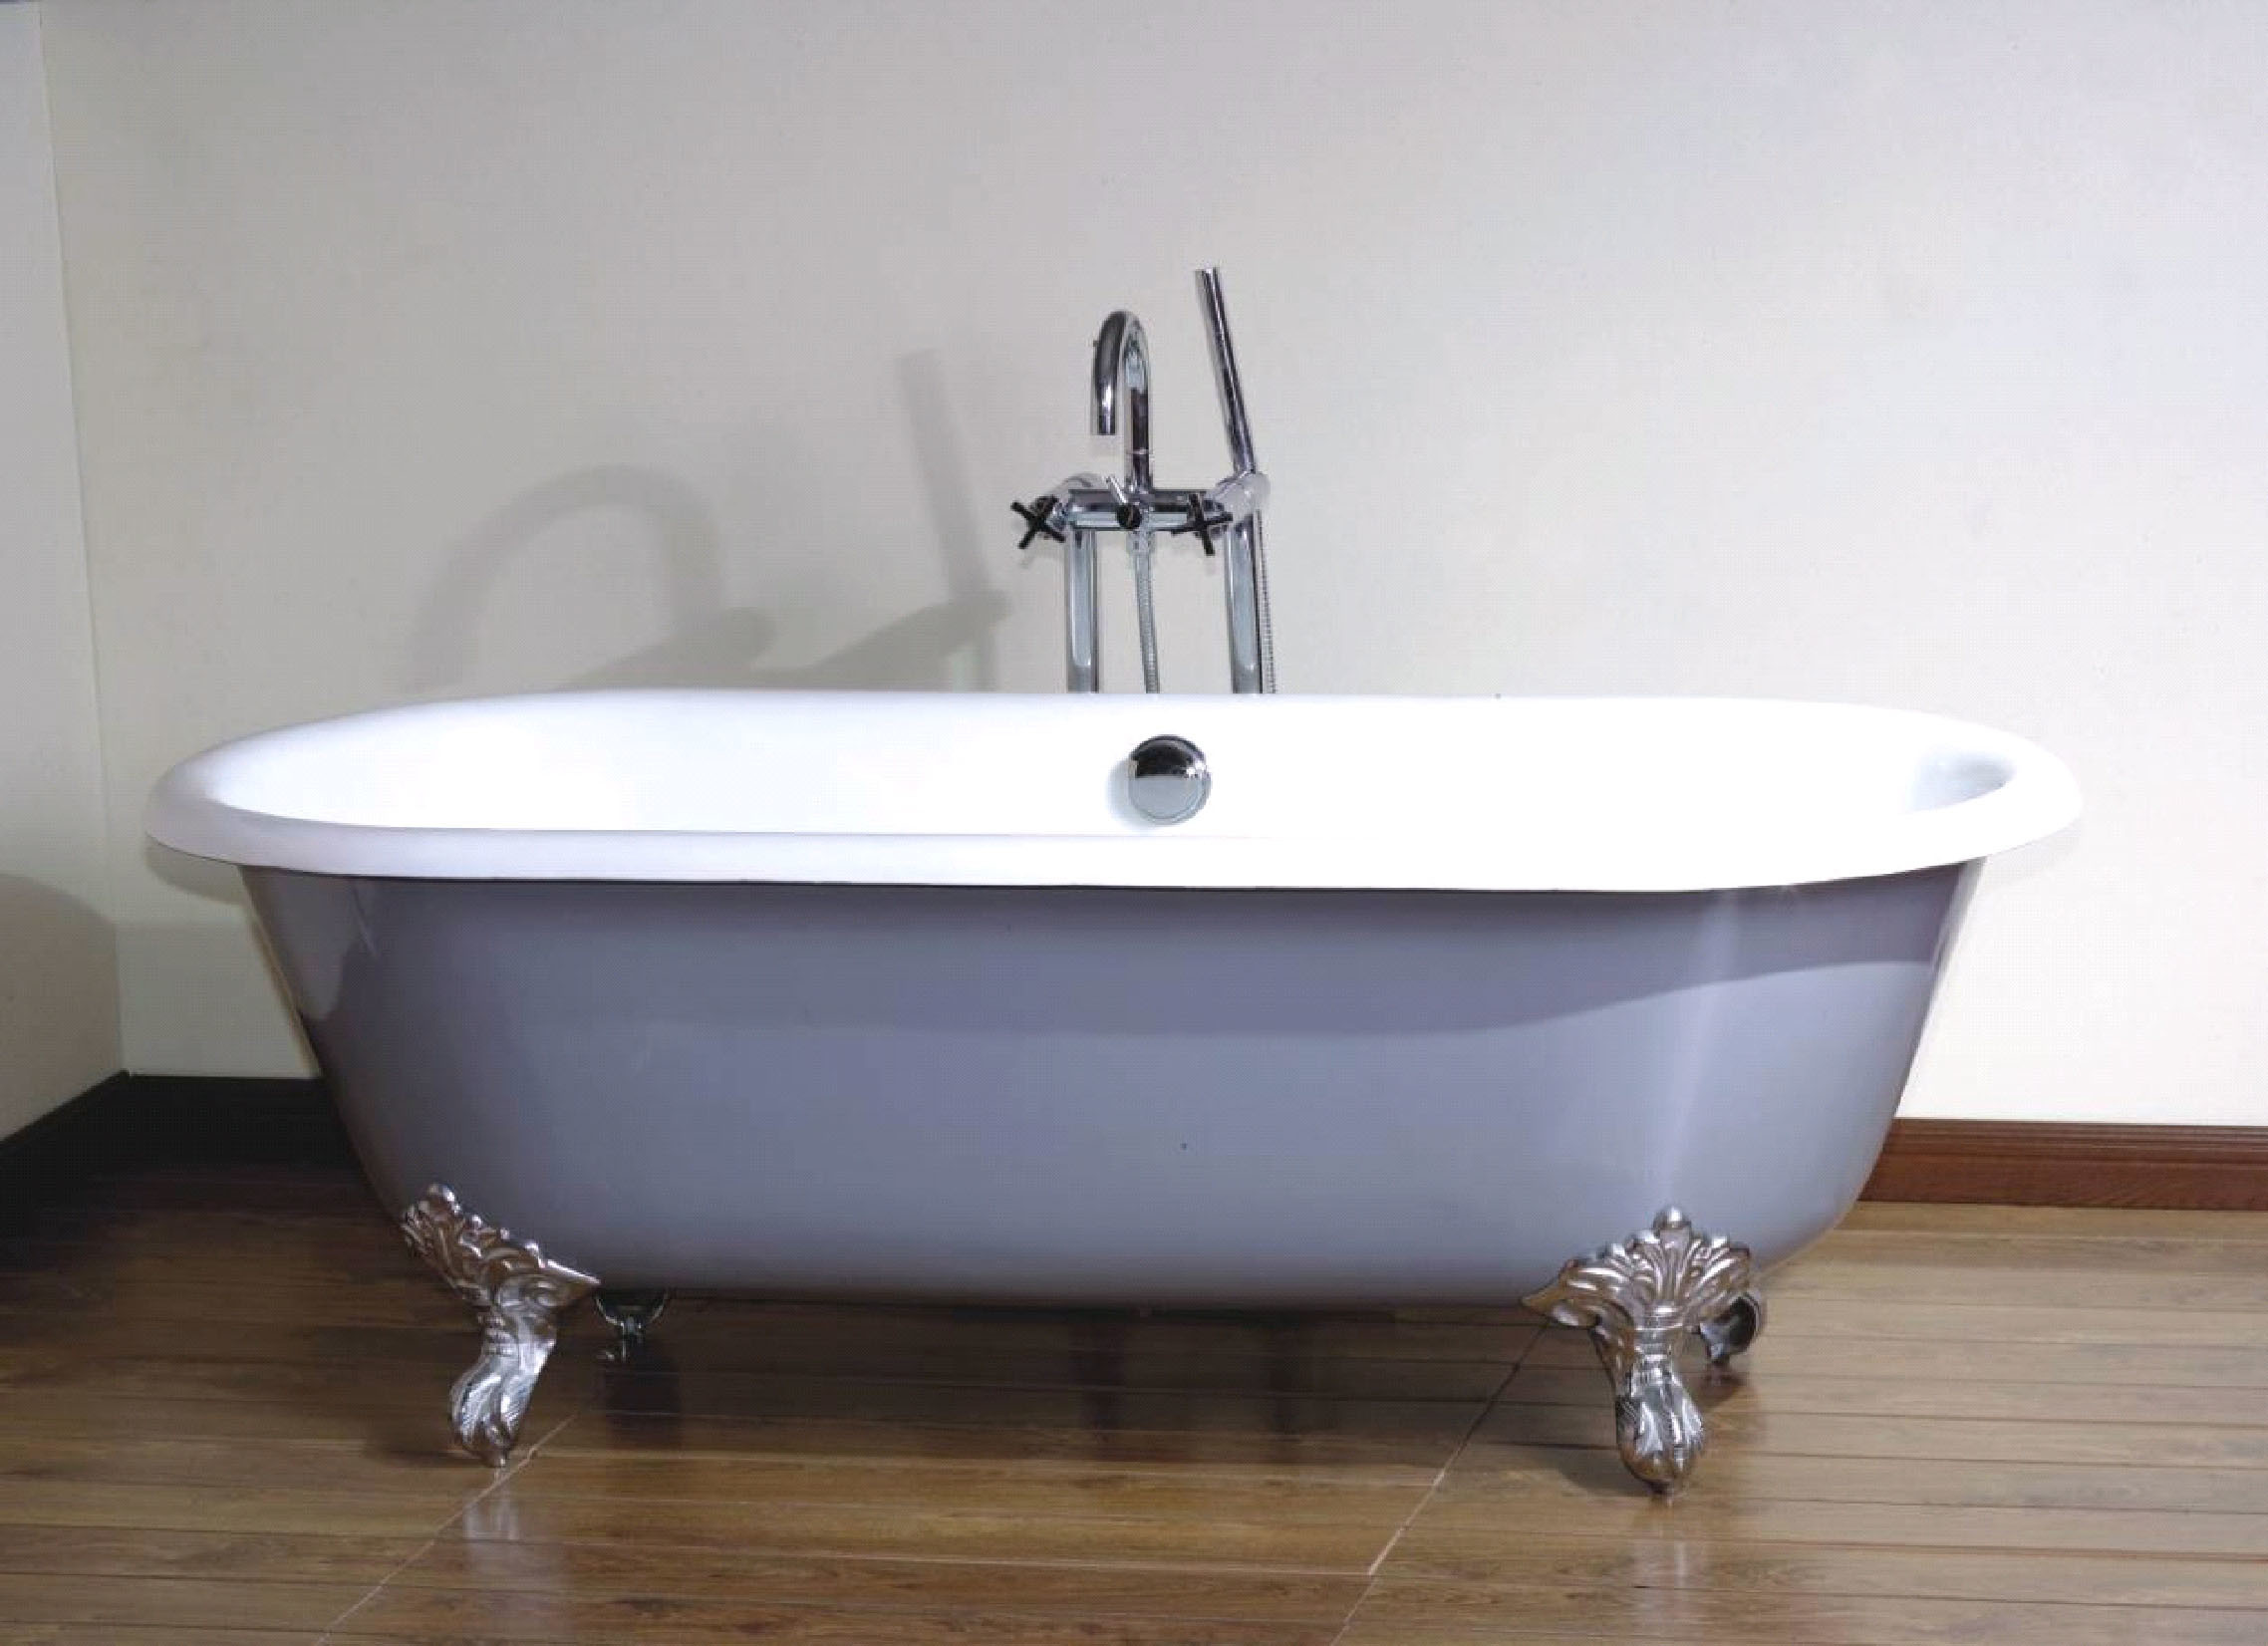 Fine How To Paint A Bathtub Tall Painting A Bathtub Square Bath Tub Paint Bathtub Refinishers Old Bath Refinishing Service Blue Bathtub Repair Contractor